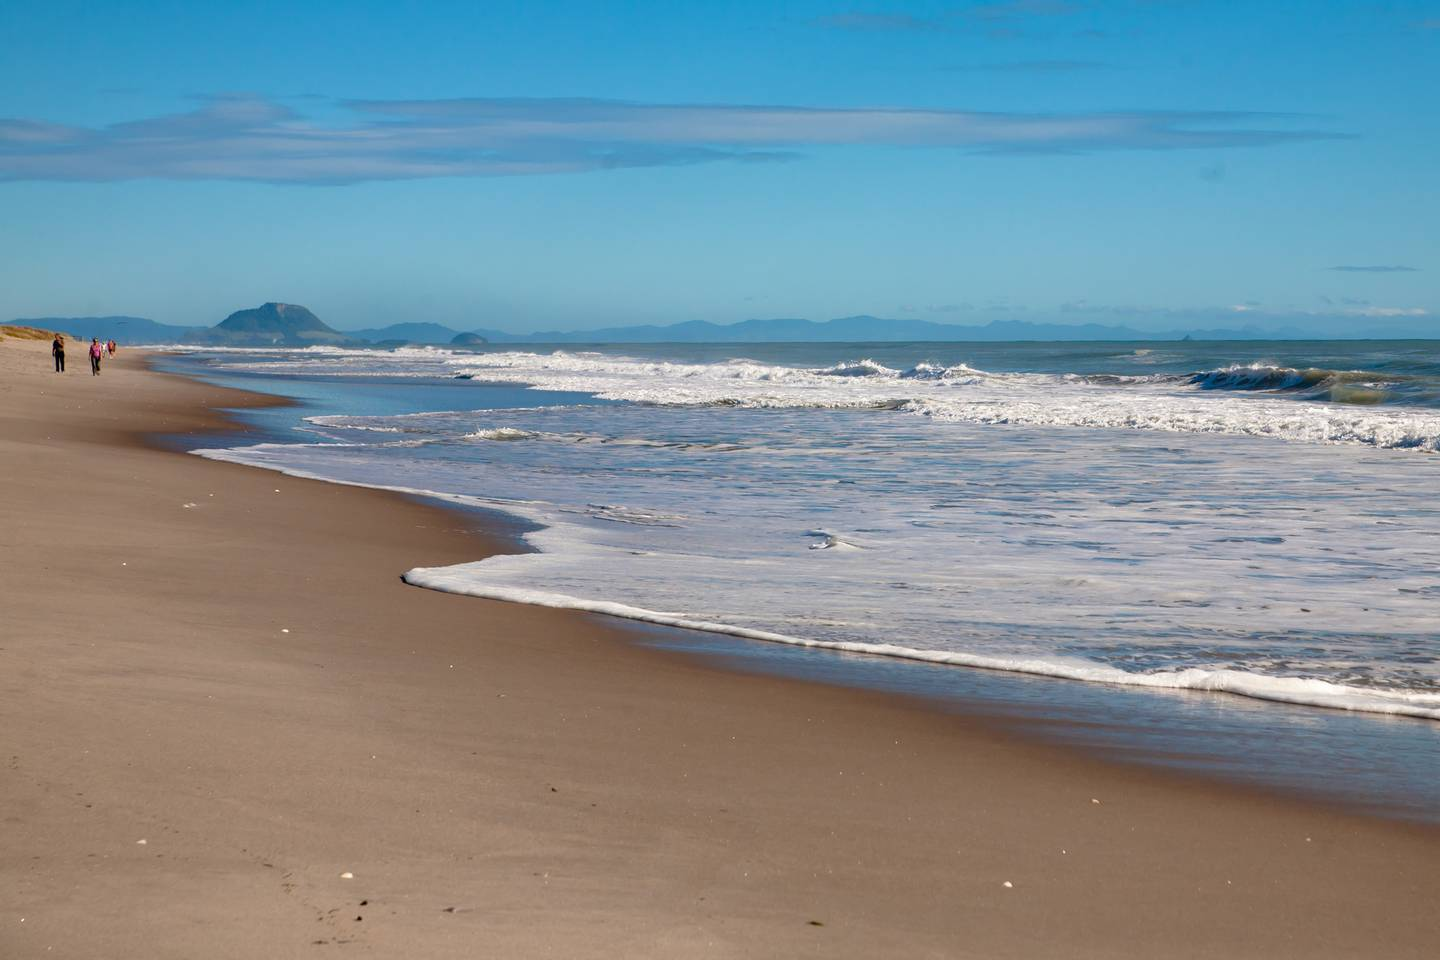 Papamoa in the Bay of Plenty is known for having plenty of beach and grassy areas ideal for...